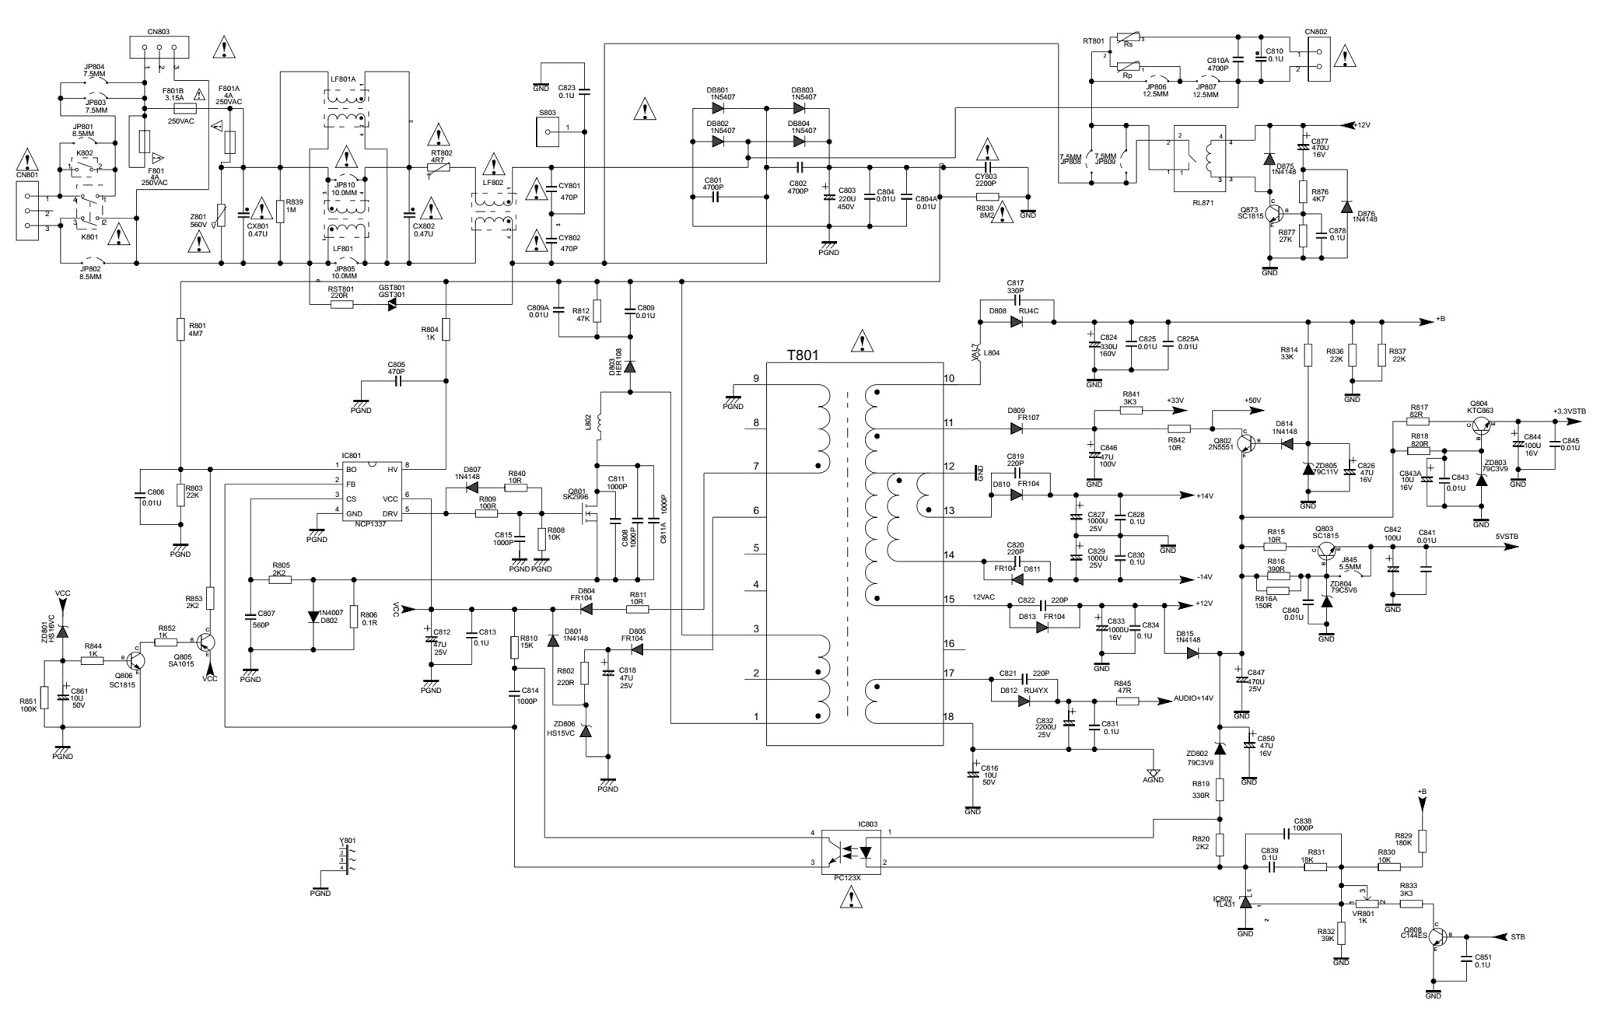 Philco 42 390 Wiring Diagram 28 Images Circuit Together With Pool Light Transformer Smps Wire Color Diagrams Basic Electrical At